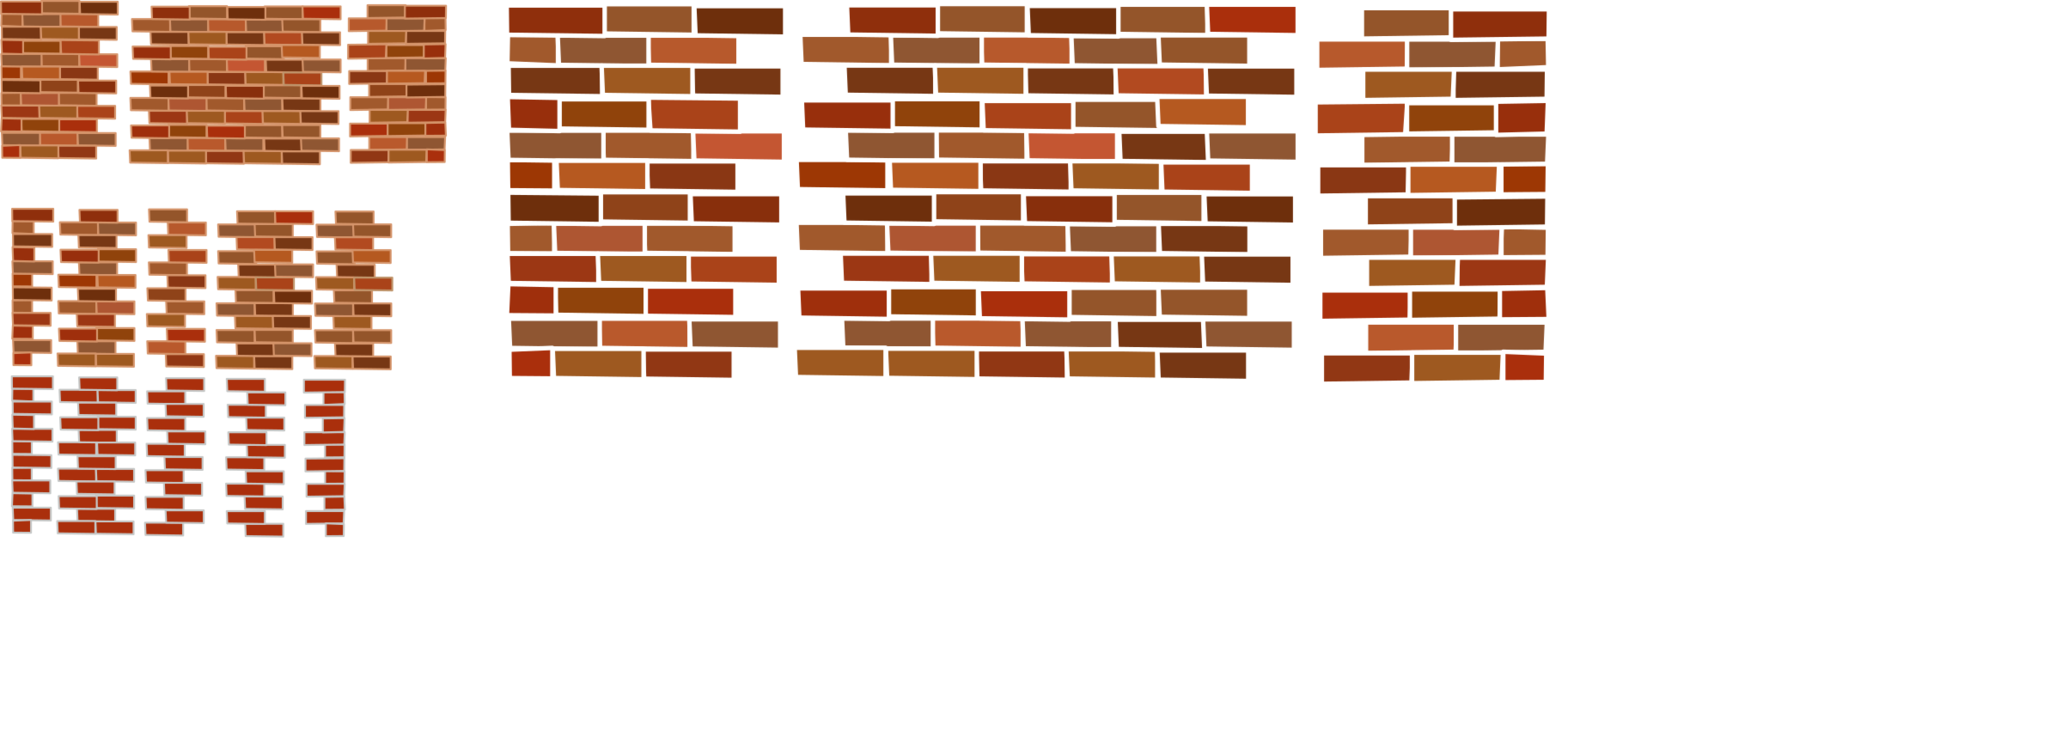 svg royalty free Clipart stone wall. Brickwork decal free commercial